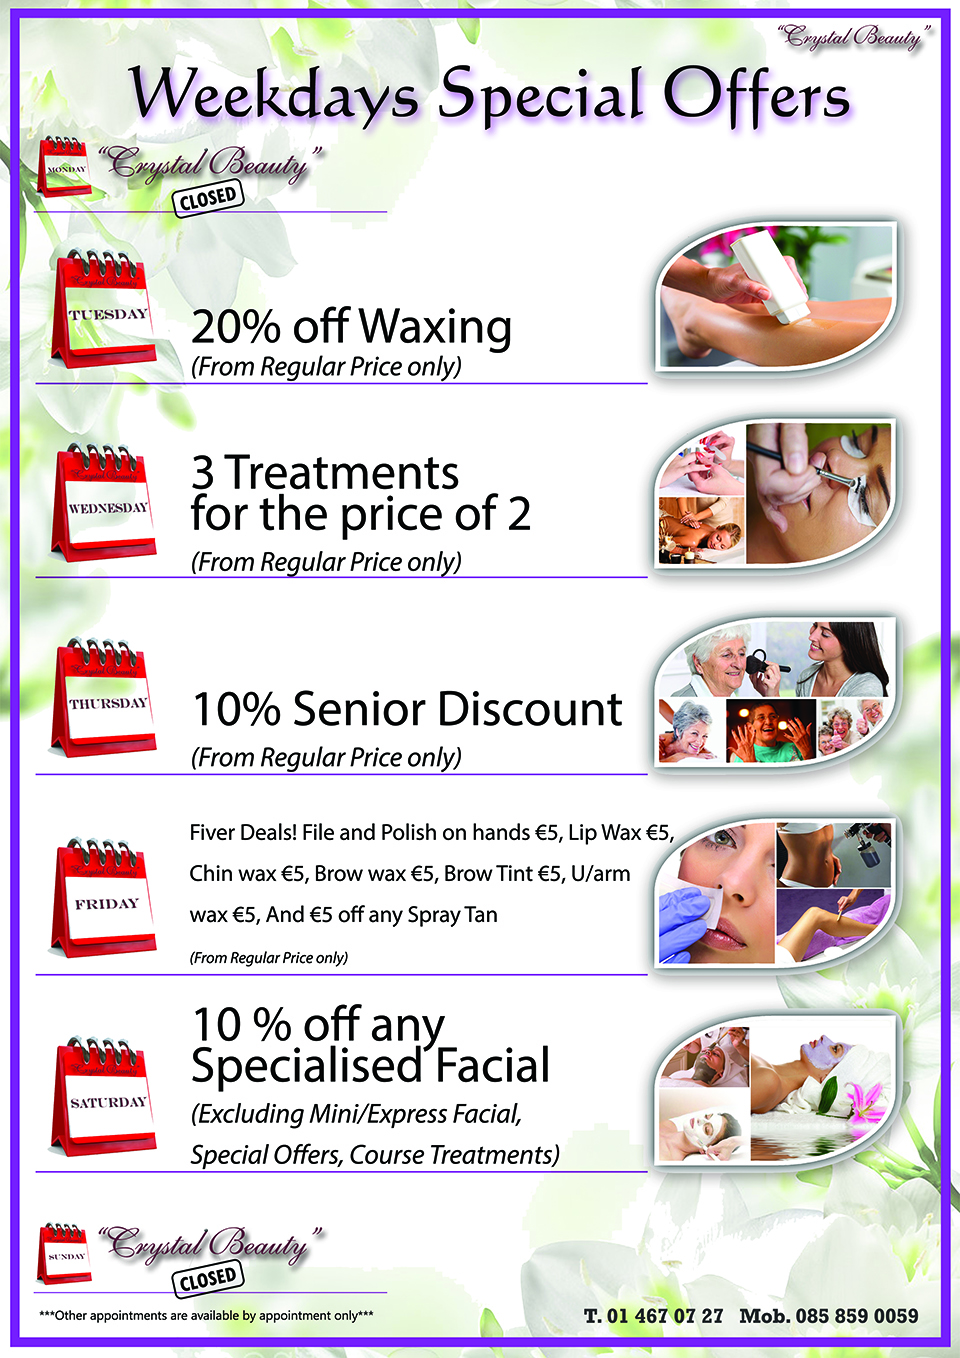 Everyday Special Offers From Crystal Beauty Clondalkin